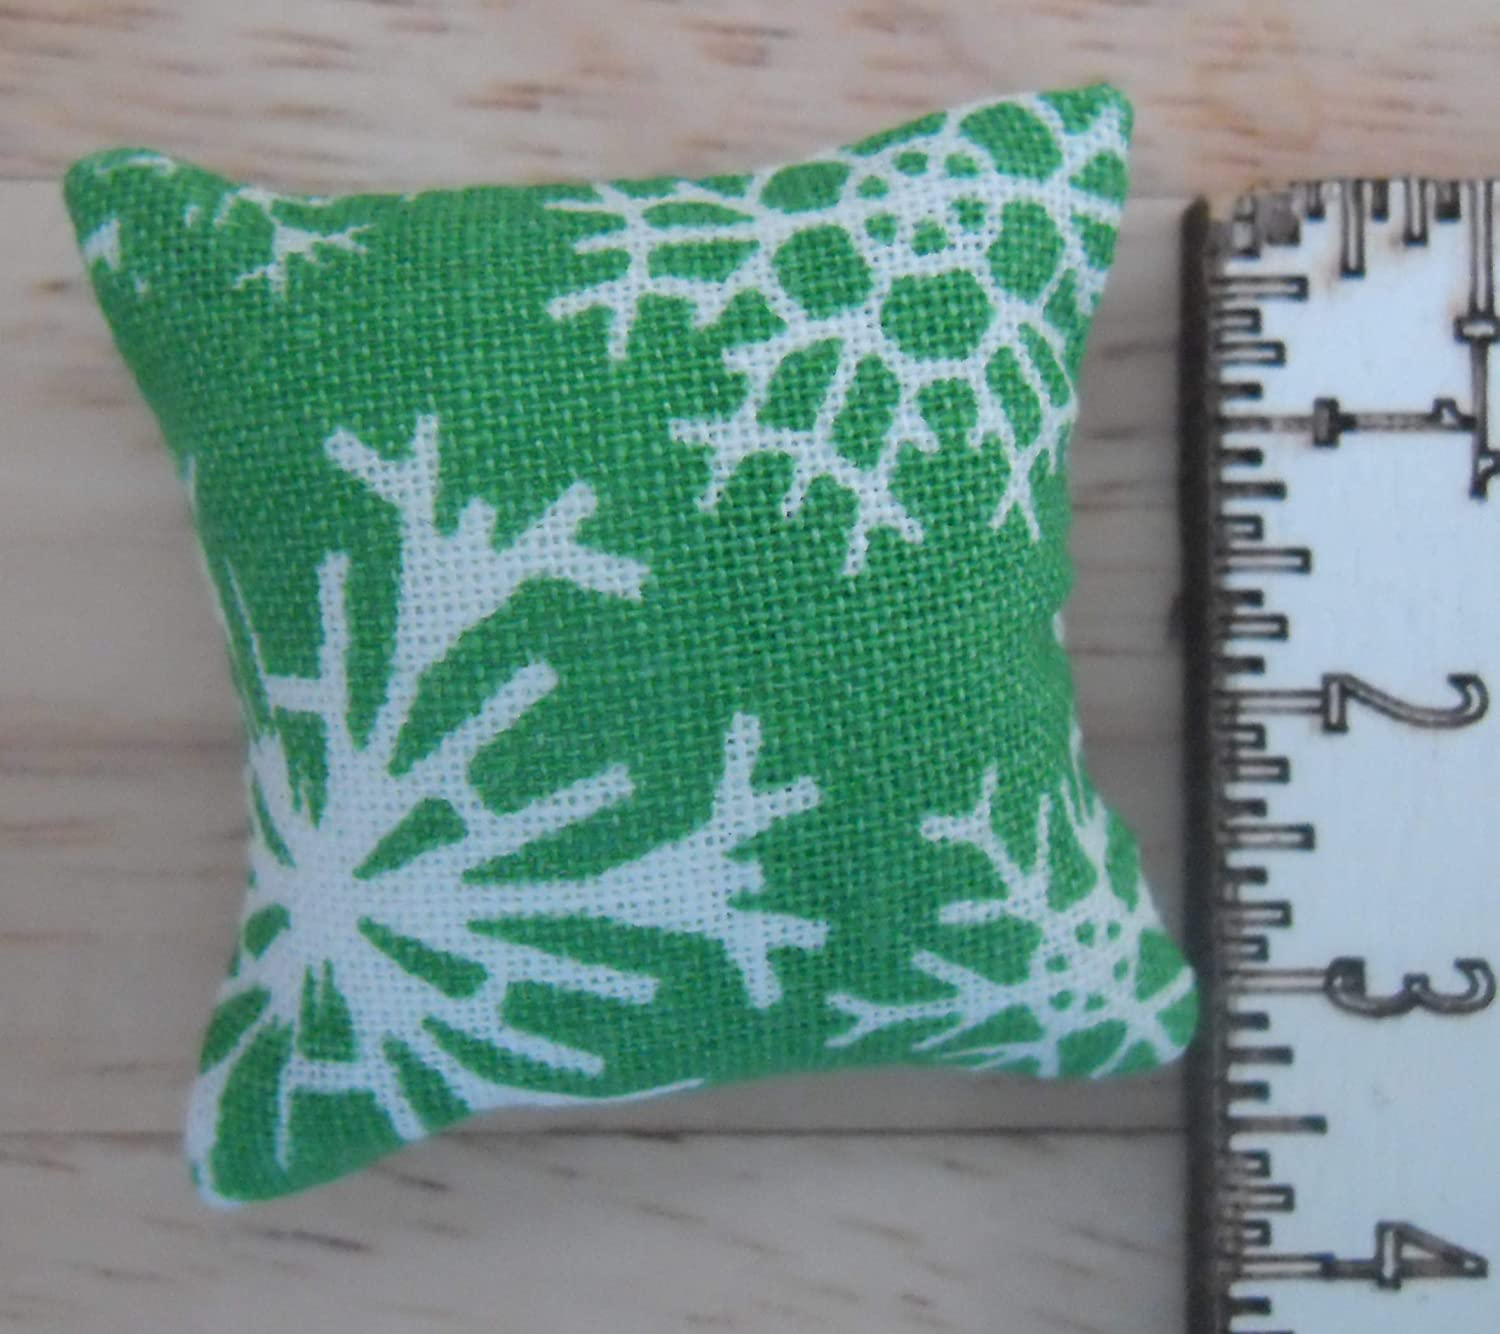 1//12th Scale Dolls House Printed Fabric Christmas Cushions Snow Flakes Design in Green /& White